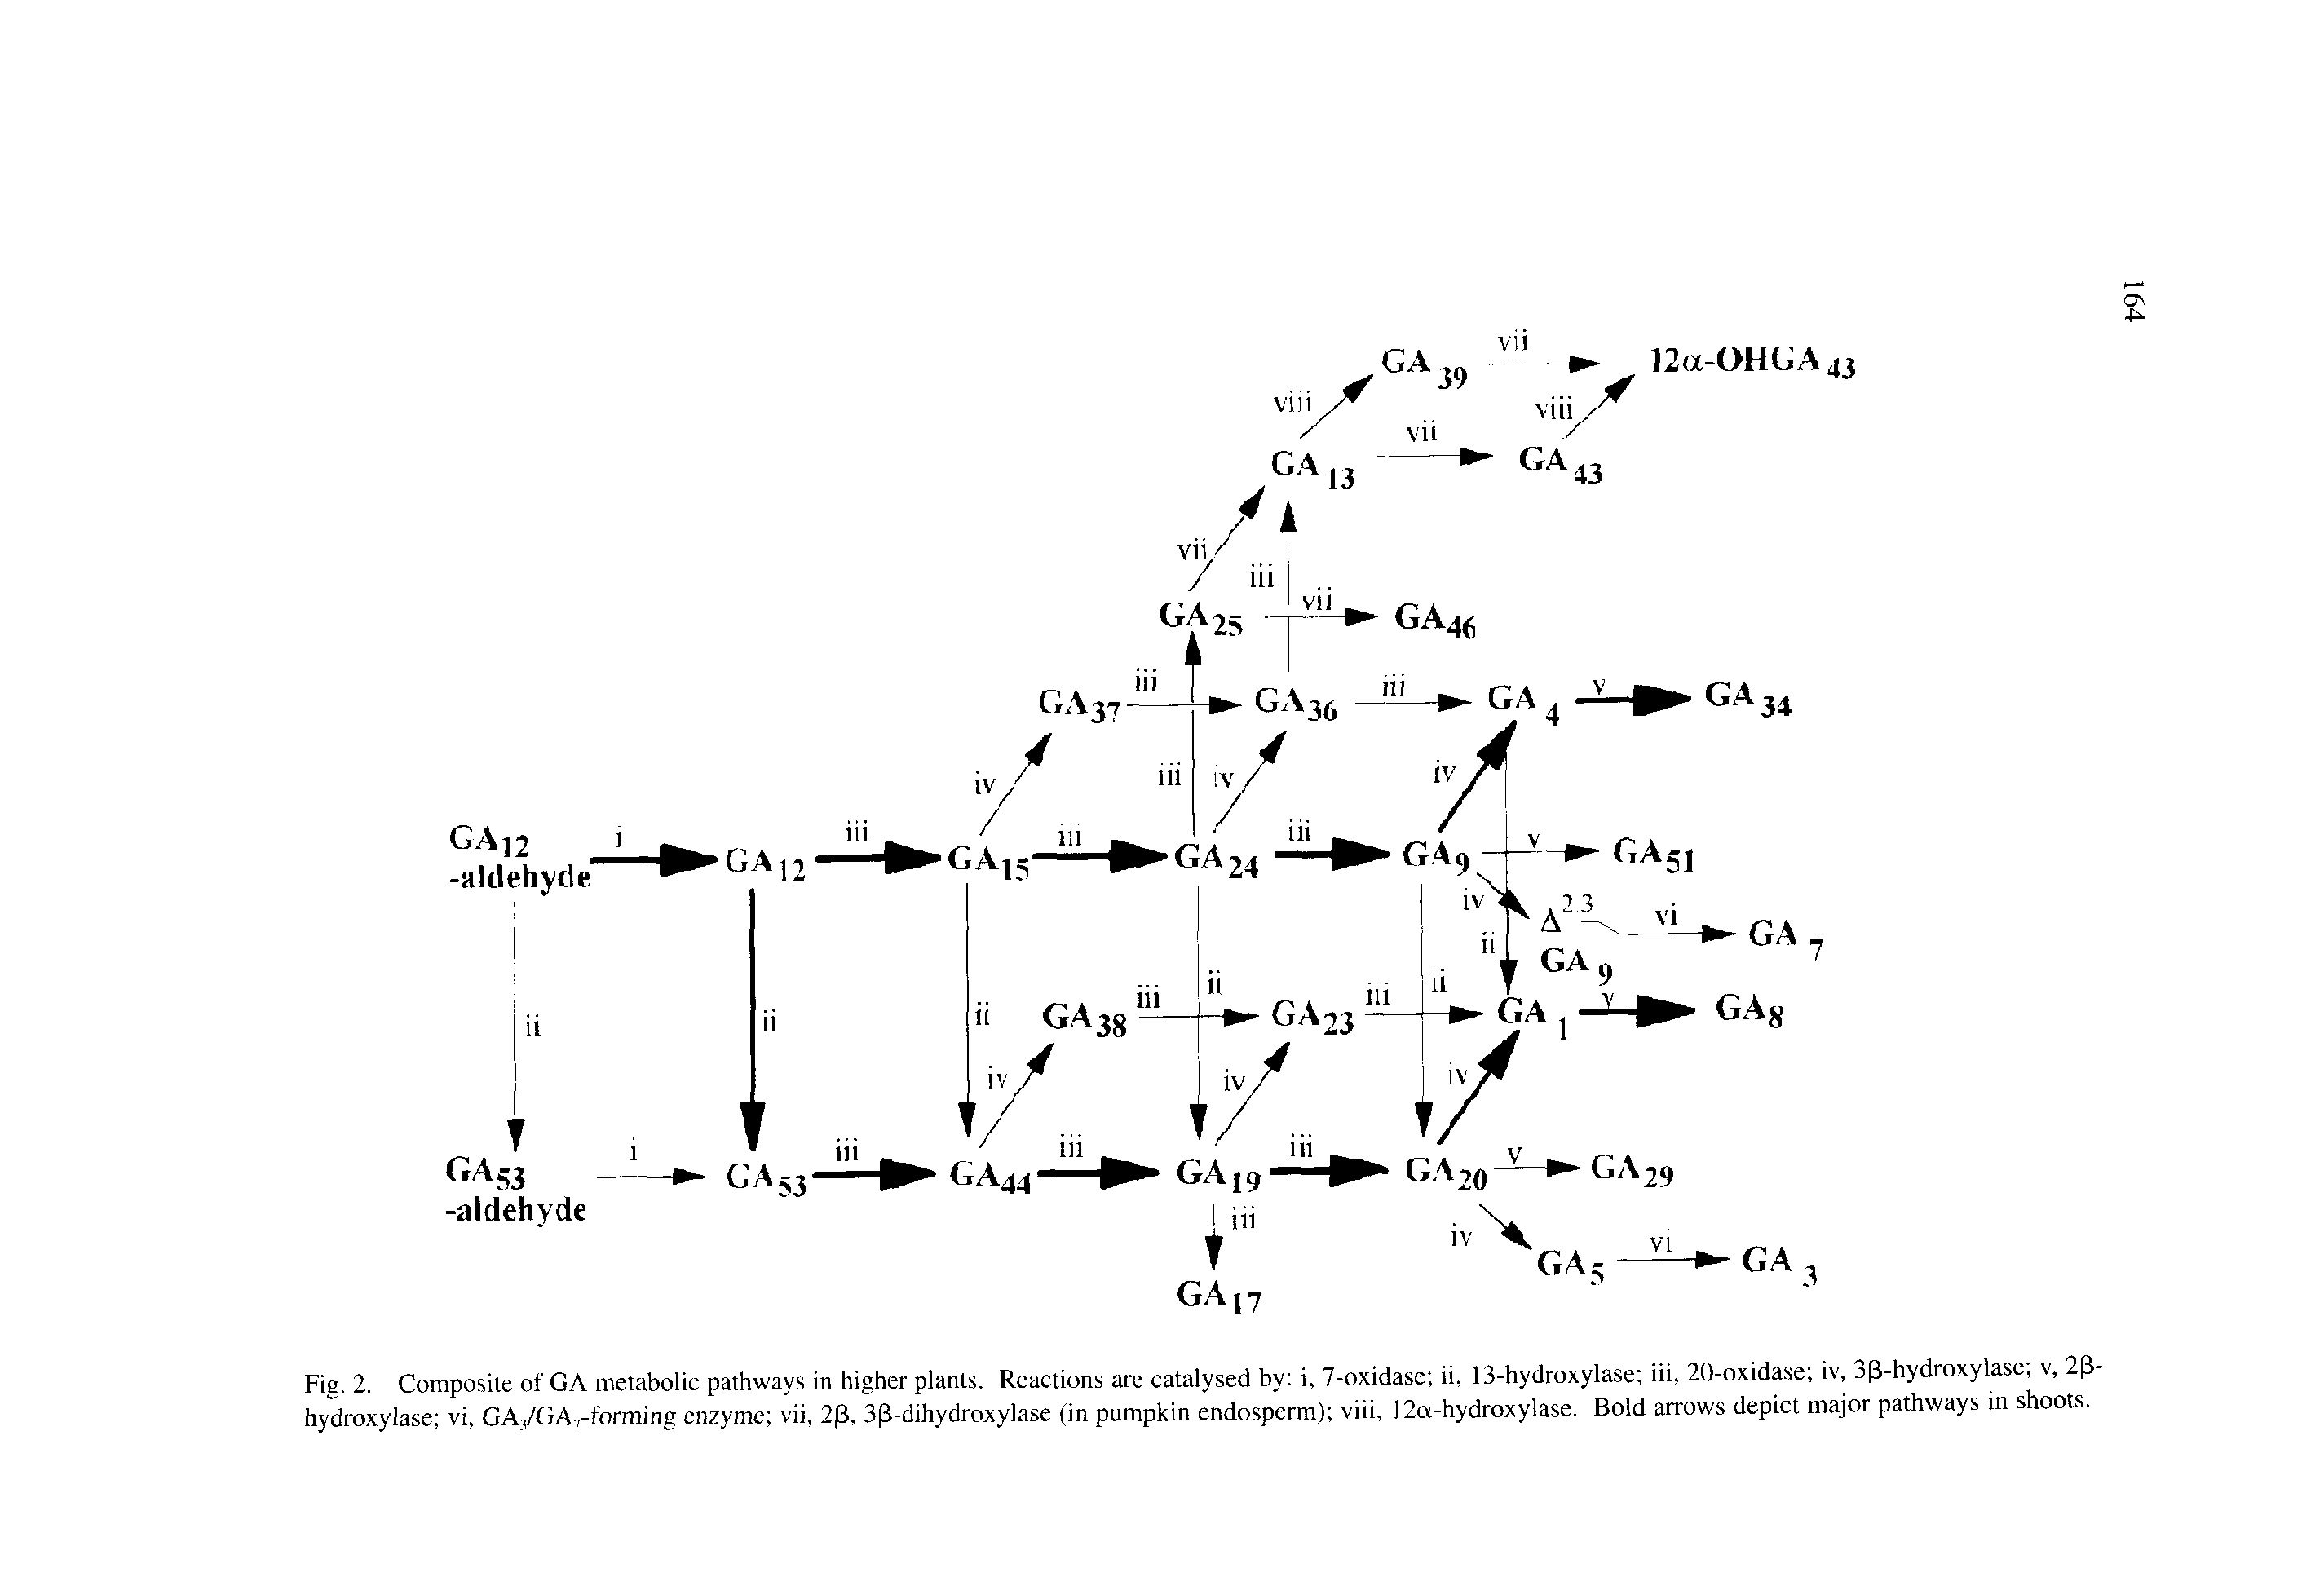 "Fig. 2. Composite of GA <a href=""/info/metabolic_pathways"">metabolic pathways</a> in <a href=""/info/plant_higher"">higher plants</a>. Reactions arc catalysed by i, 7-oxidase ii, 13-hydroxylase iii, 20-oxidase iv, 33-hydroxylase v, 23-hydroxylase vi, GA,/GA7-forming enzyme vii, 23, 33-dihydroxylase (in pumpkin endosperm) viii, 12a-hydroxylase. Bold arrows depict <a href=""/info/the_major_np_pathways"">major pathways</a> in shoots."